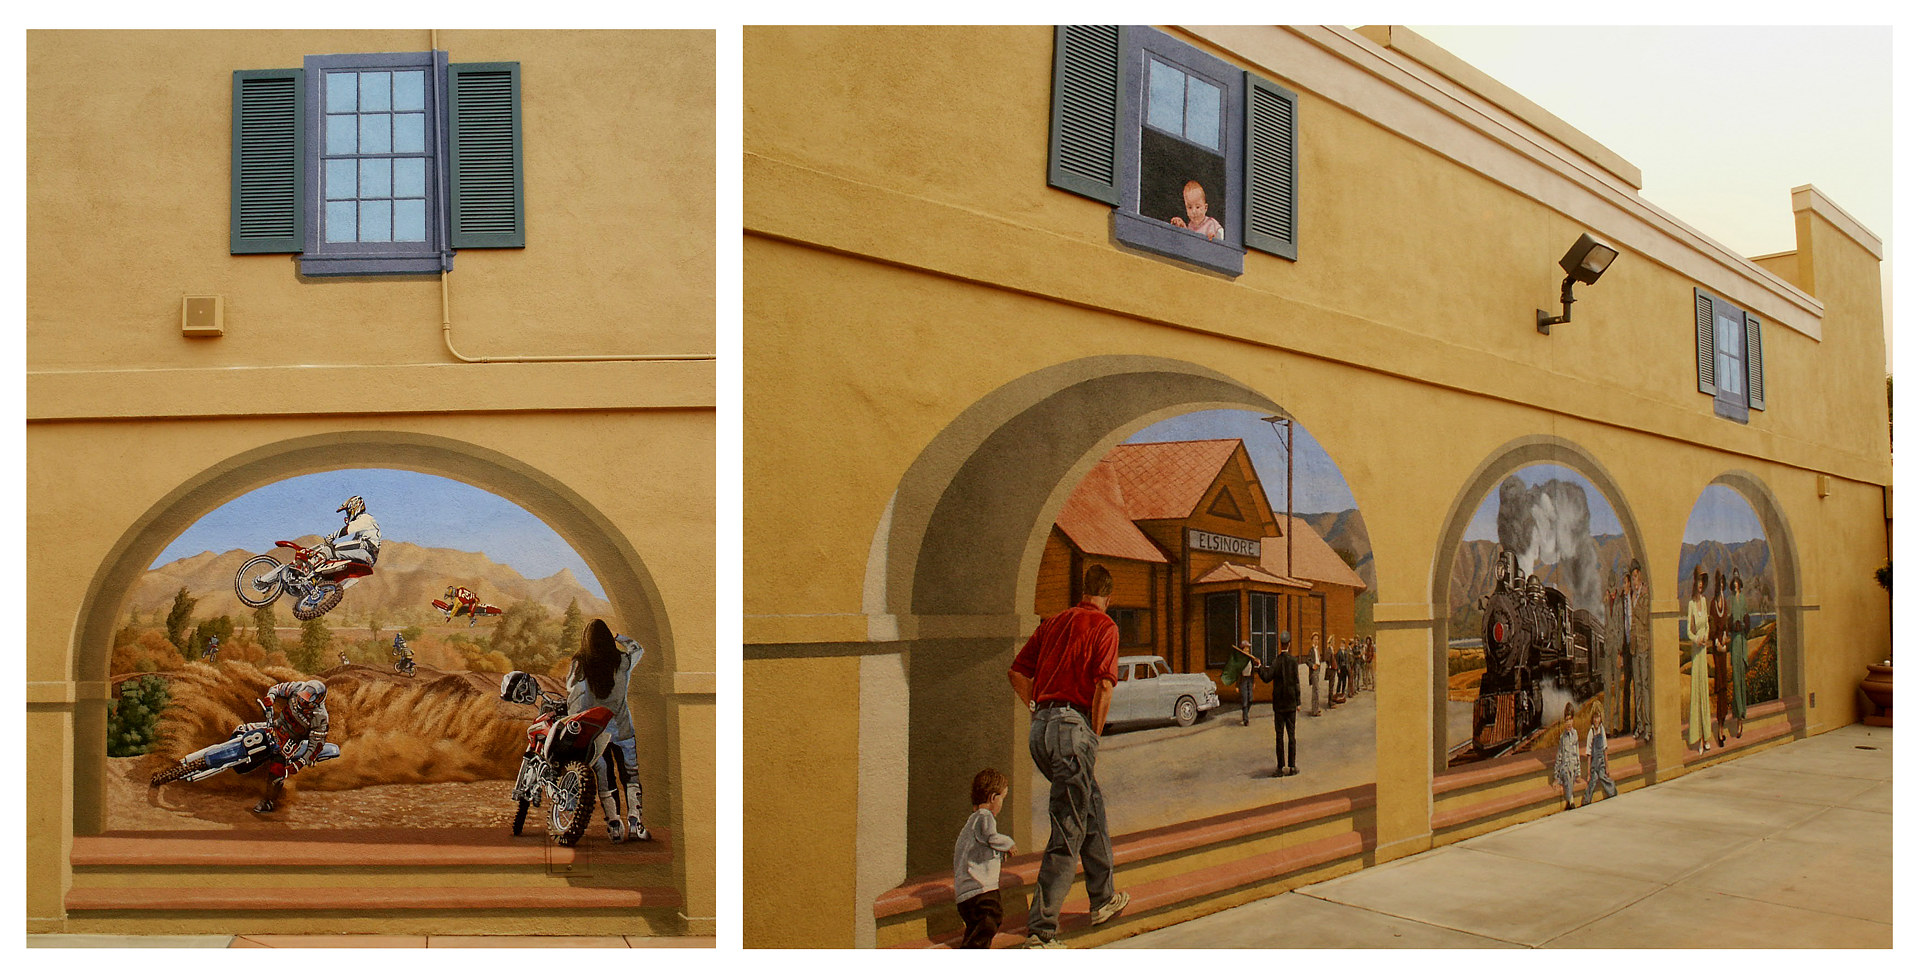 Elsinore Outlet Mall Mural Project 1 by Robert Milling